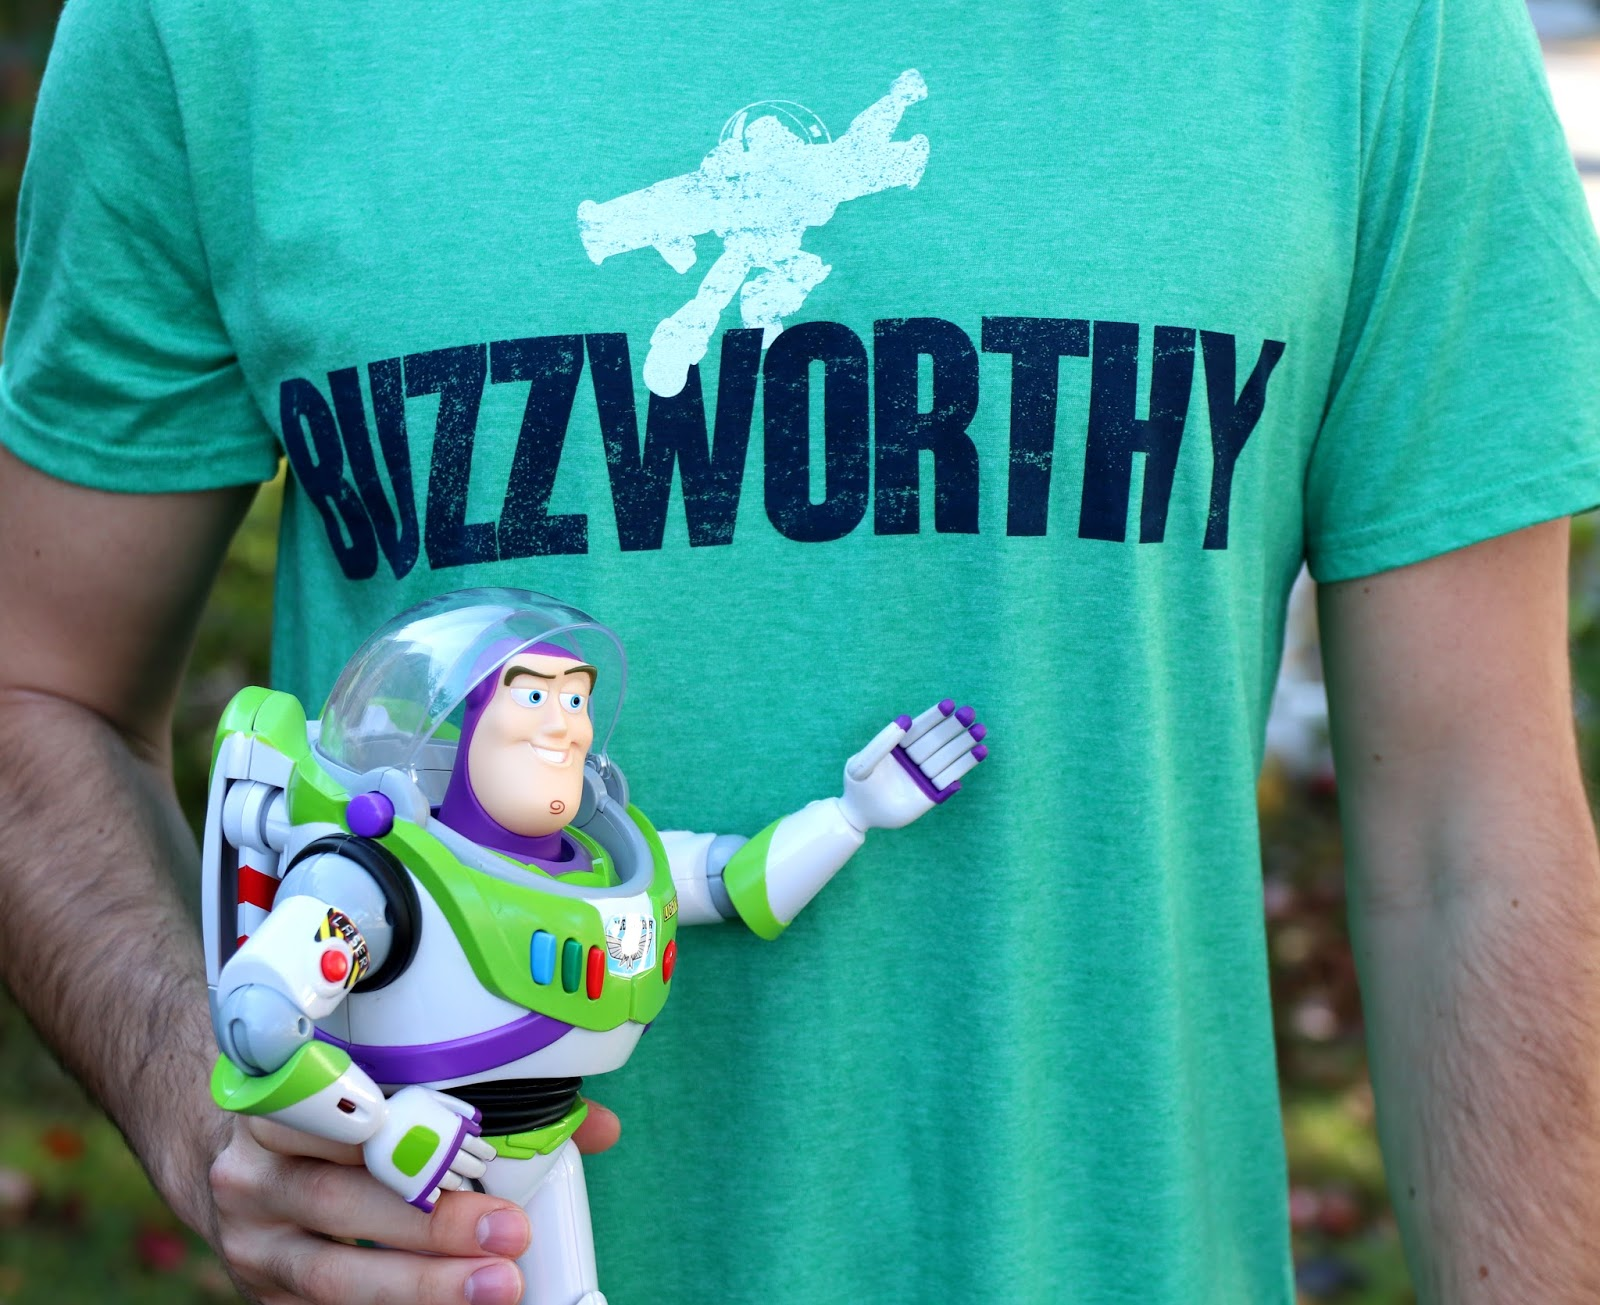 disney pixar toy story buzz lightyear buzzworthy tee t-shirt